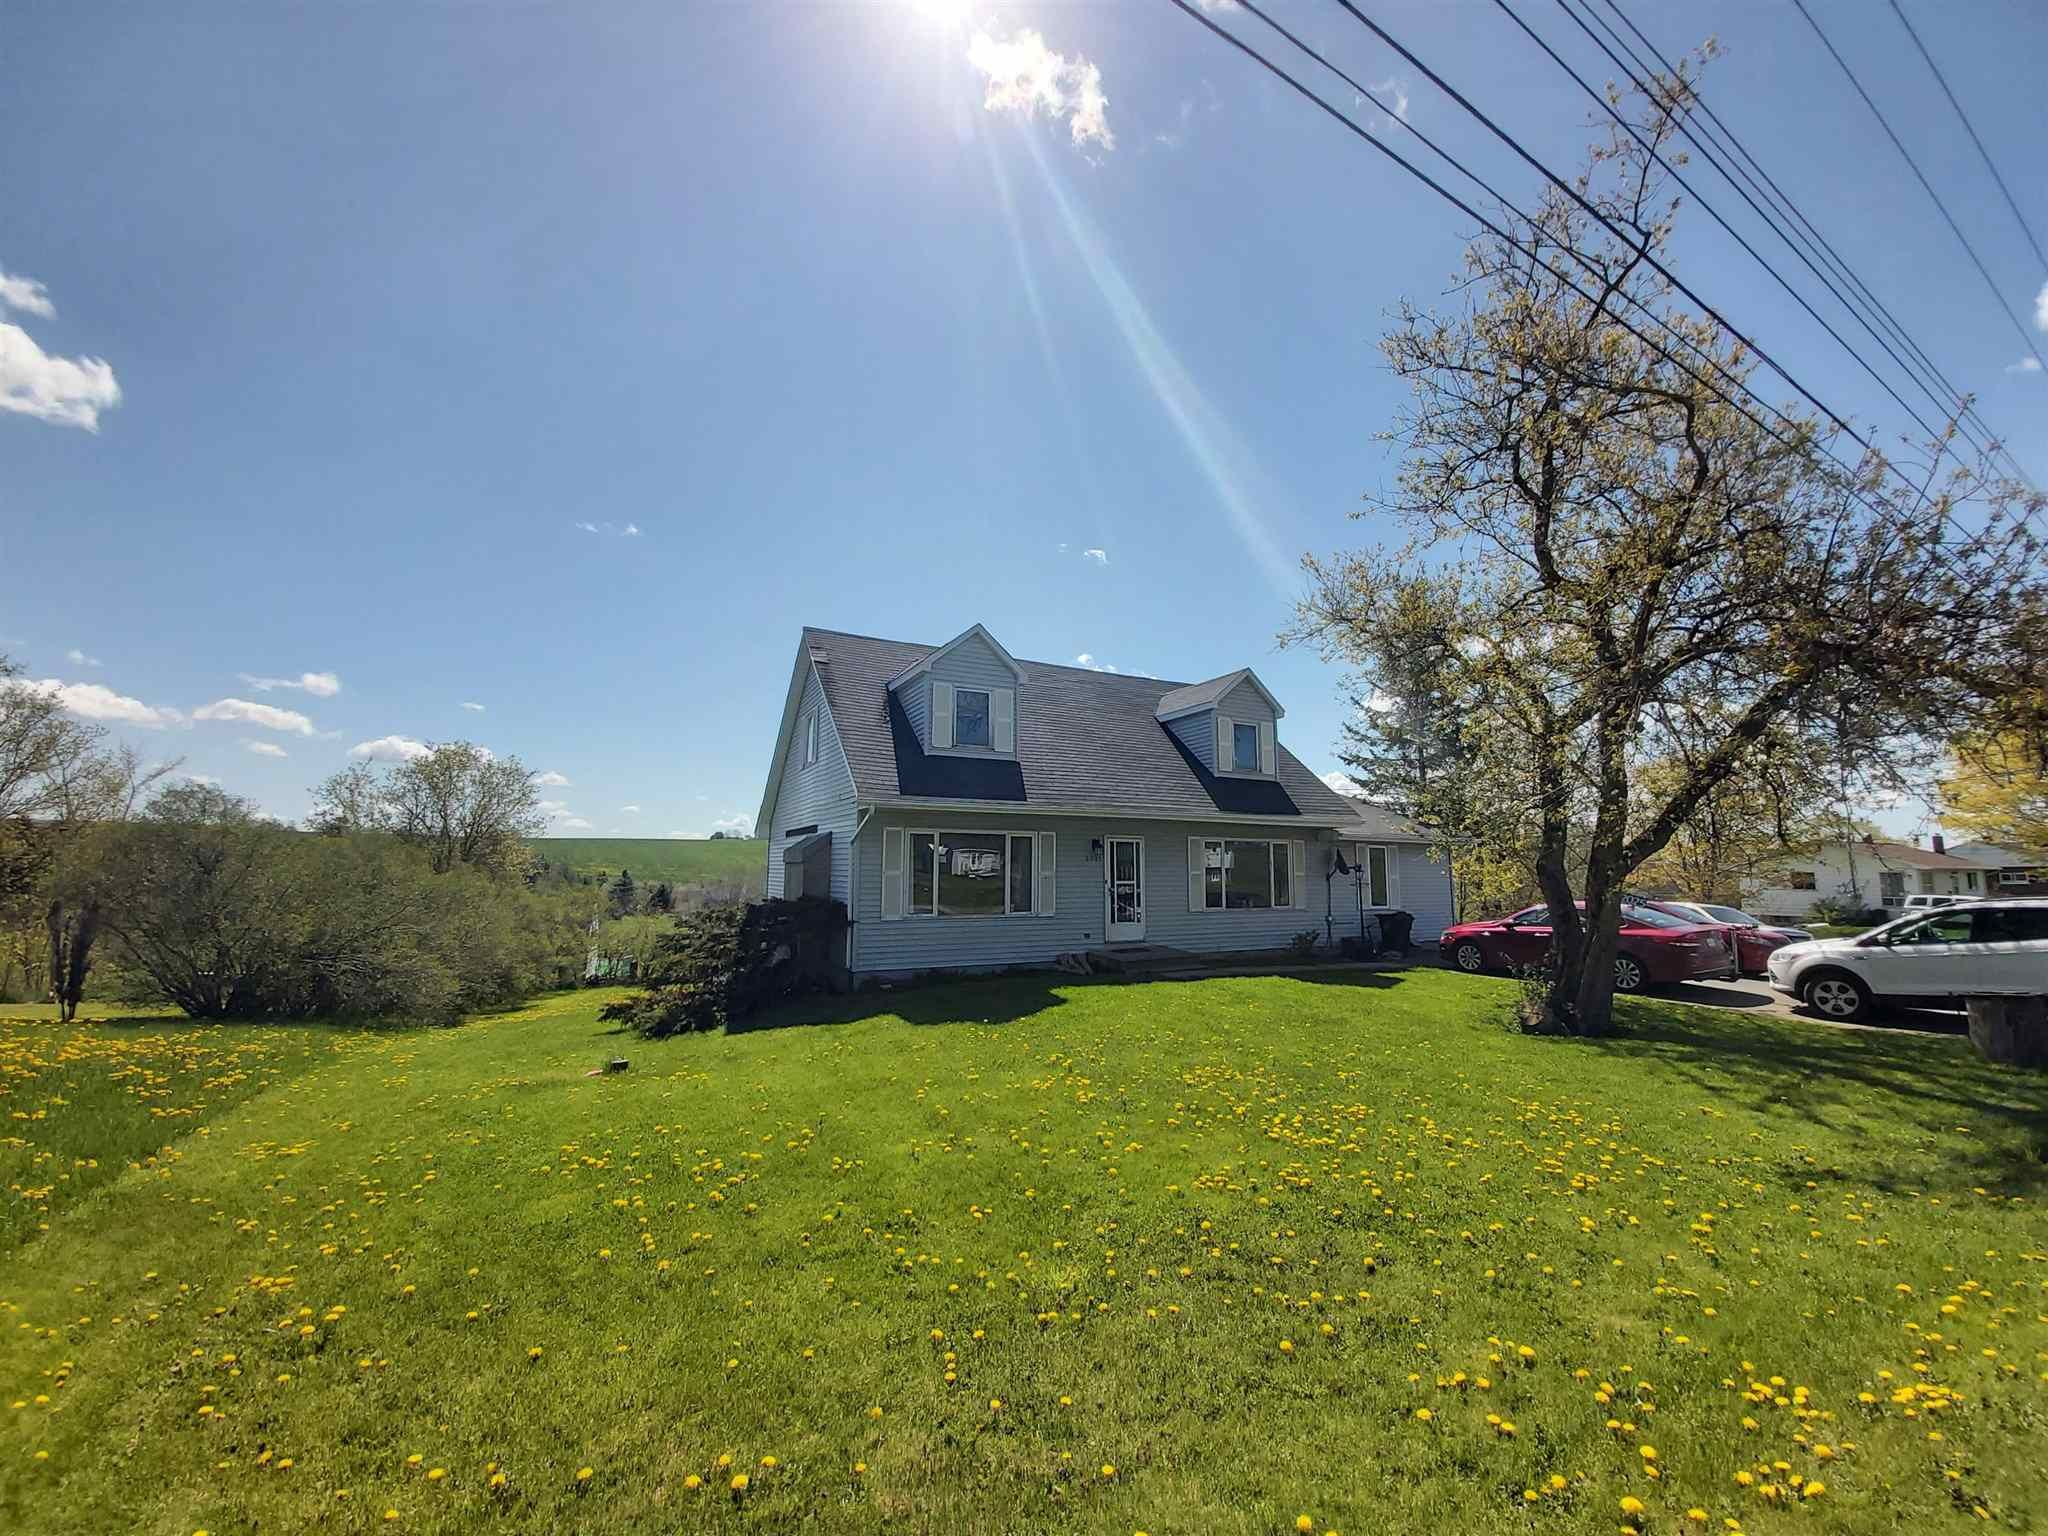 Main Photo: 2025 Highway 2 in Milford: 105-East Hants/Colchester West Residential for sale (Halifax-Dartmouth)  : MLS®# 202111897